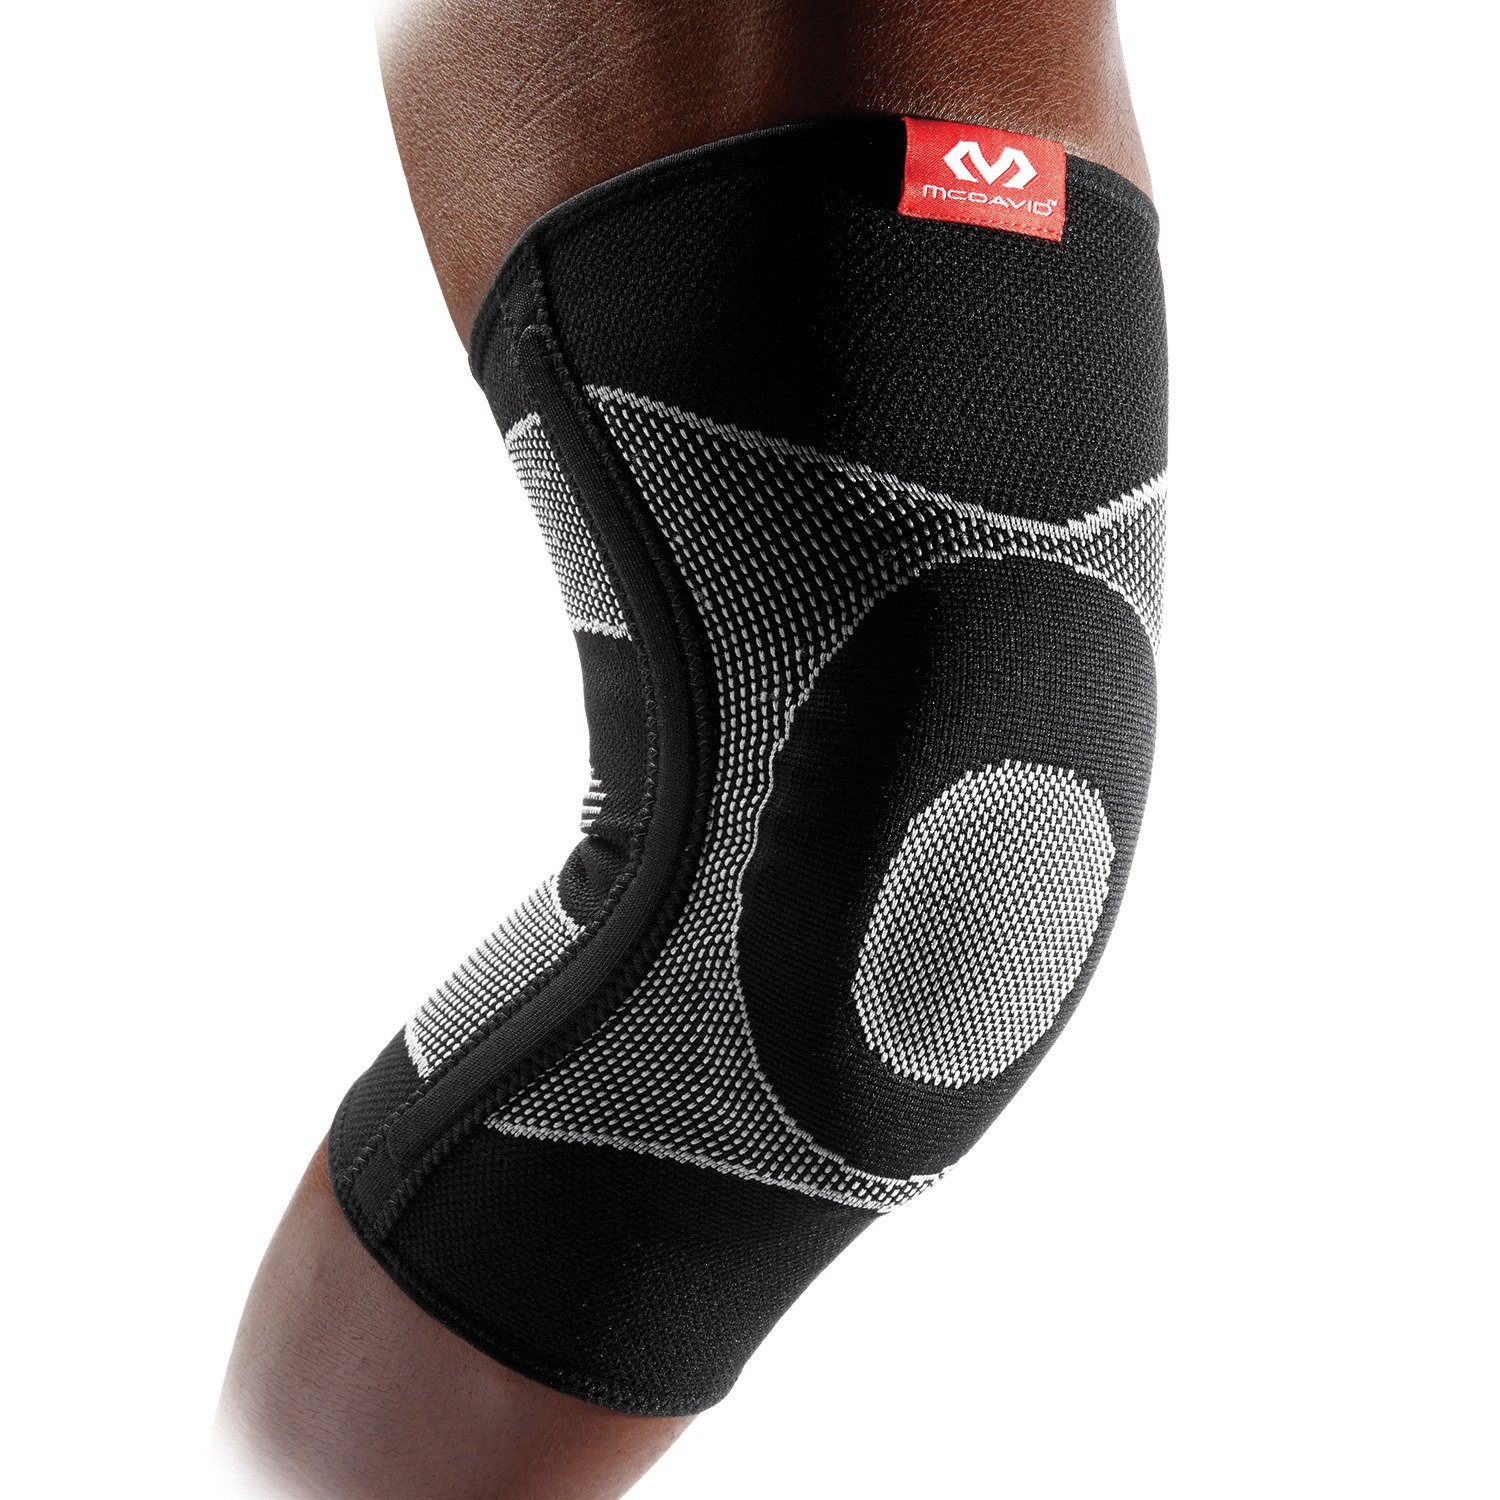 132215afb7c30f Braces & Support | Sports Braces, Sports Support Braces, Athletic ...